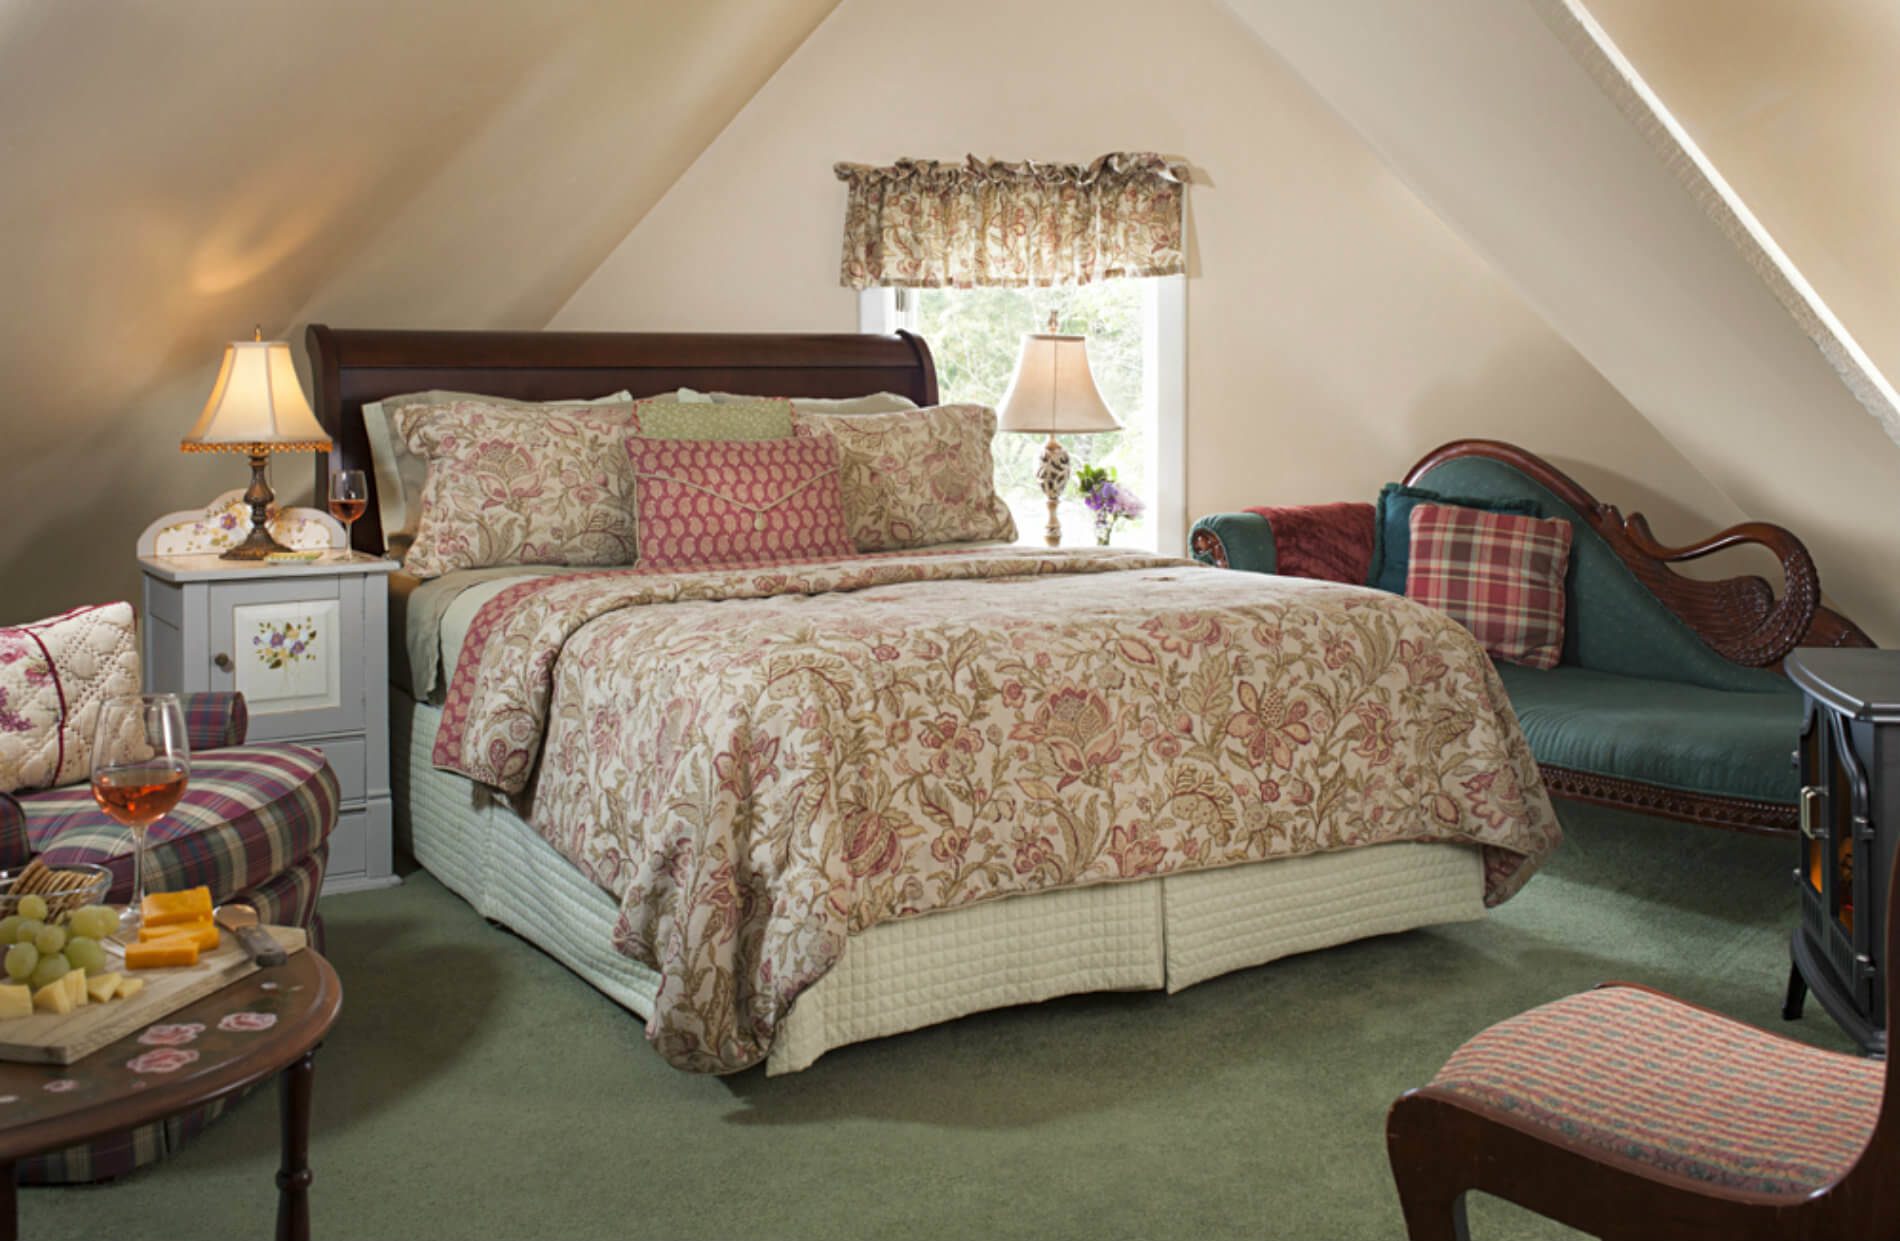 Wooden bed in gabled room with green carpet